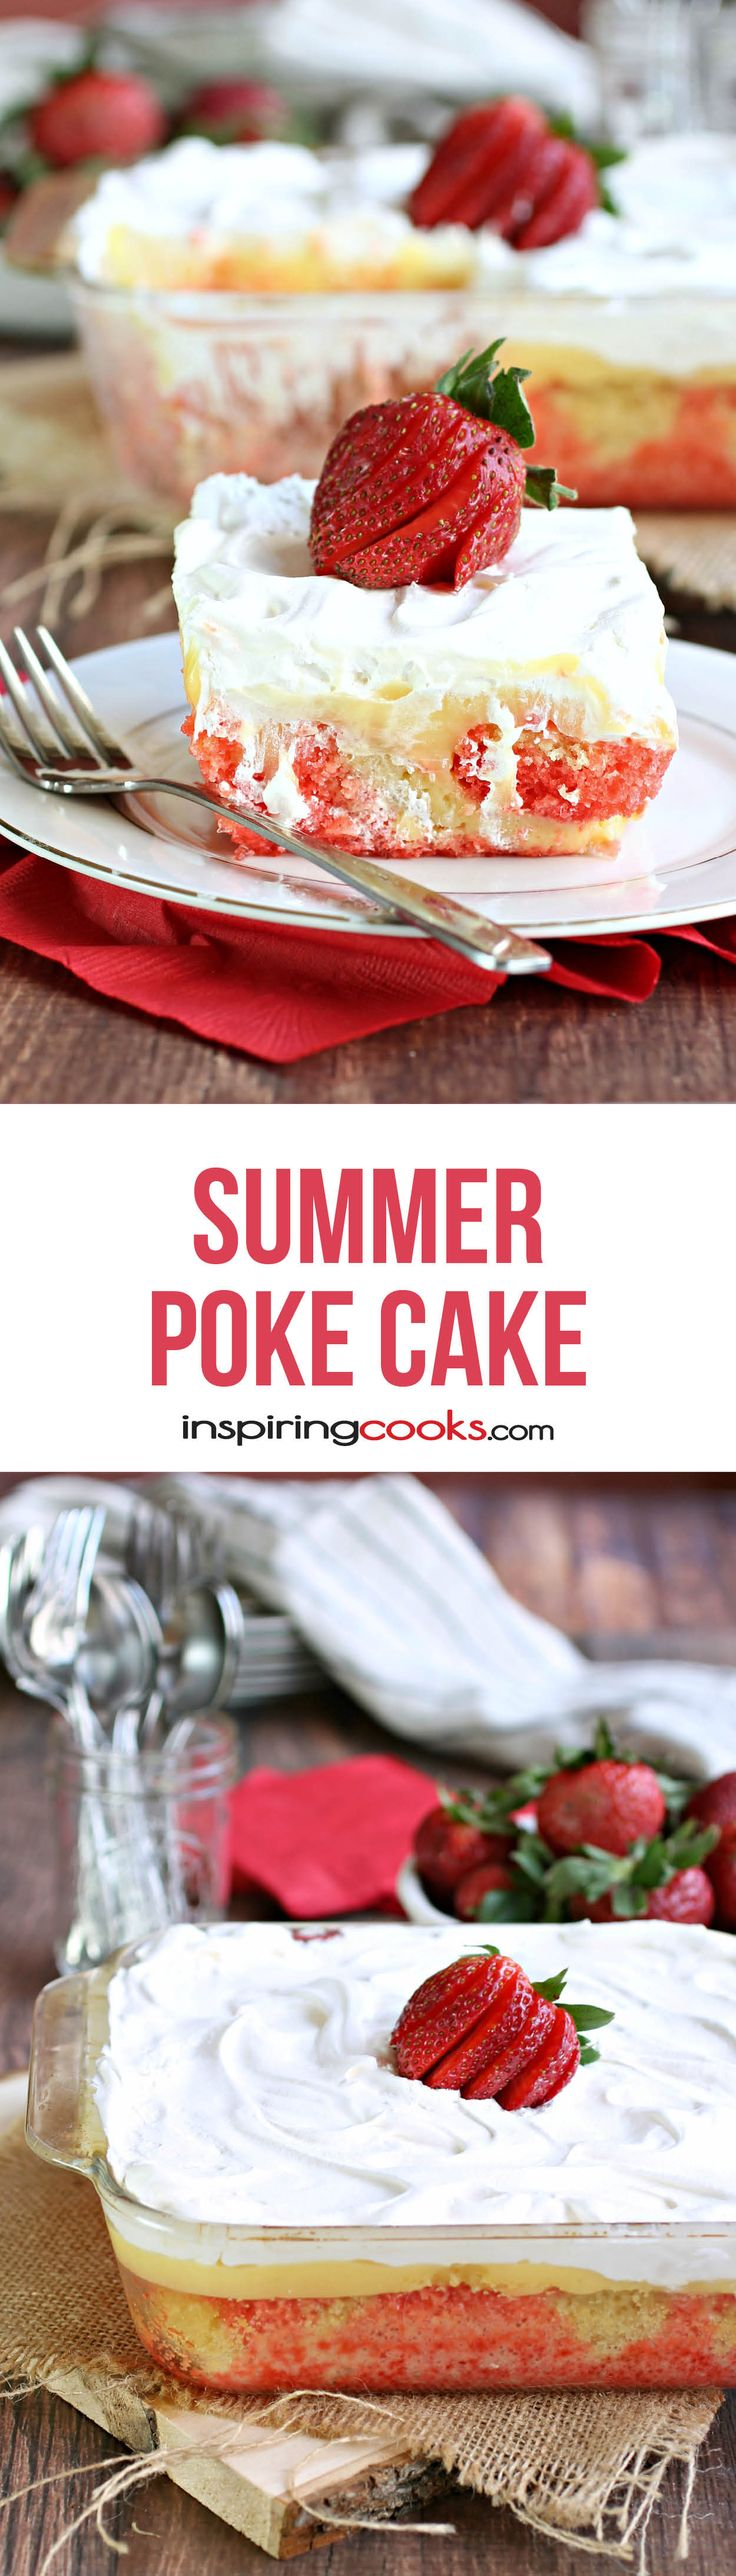 Summer Pudding Poke Cake Recipe - All this takes is a box cake mix, Jello…